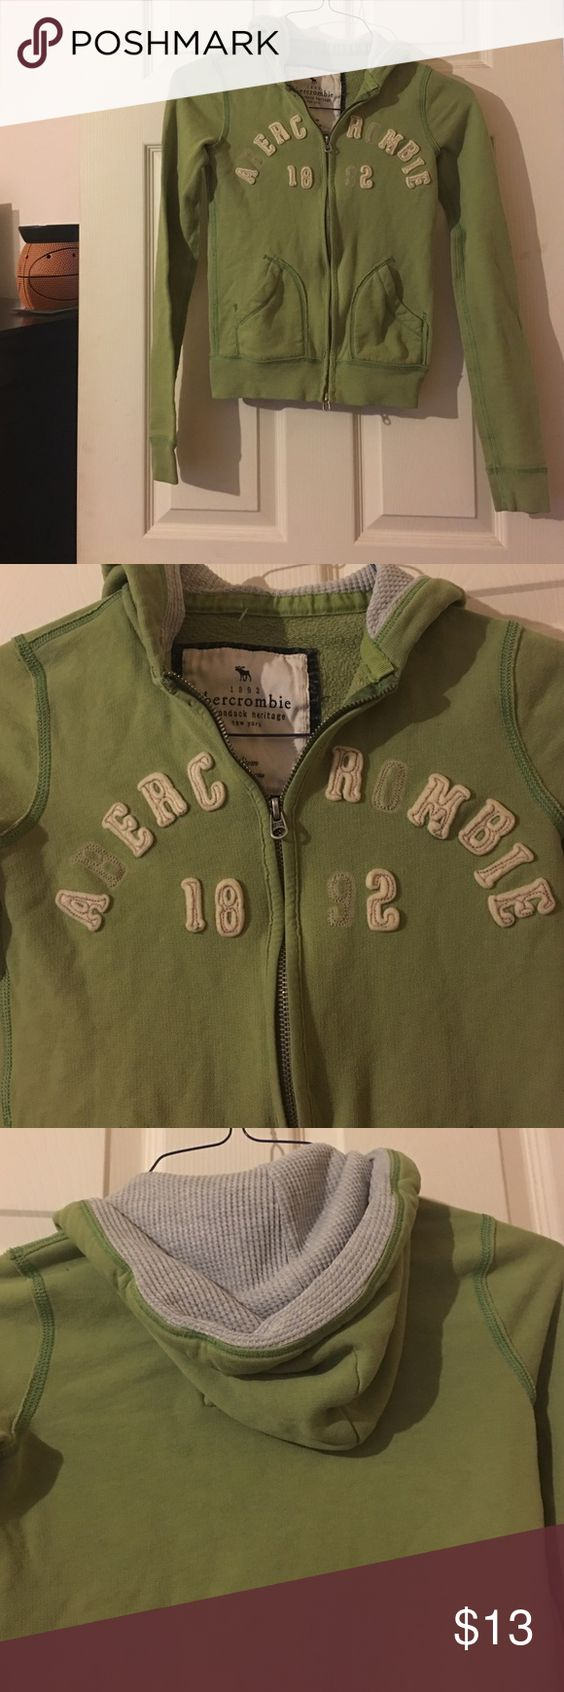 Abercrombie & Fitch hoodie Green Abercrombie & Fitch hoodie, really comfortable for fall! Abercrombie & Fitch Jackets & Coats